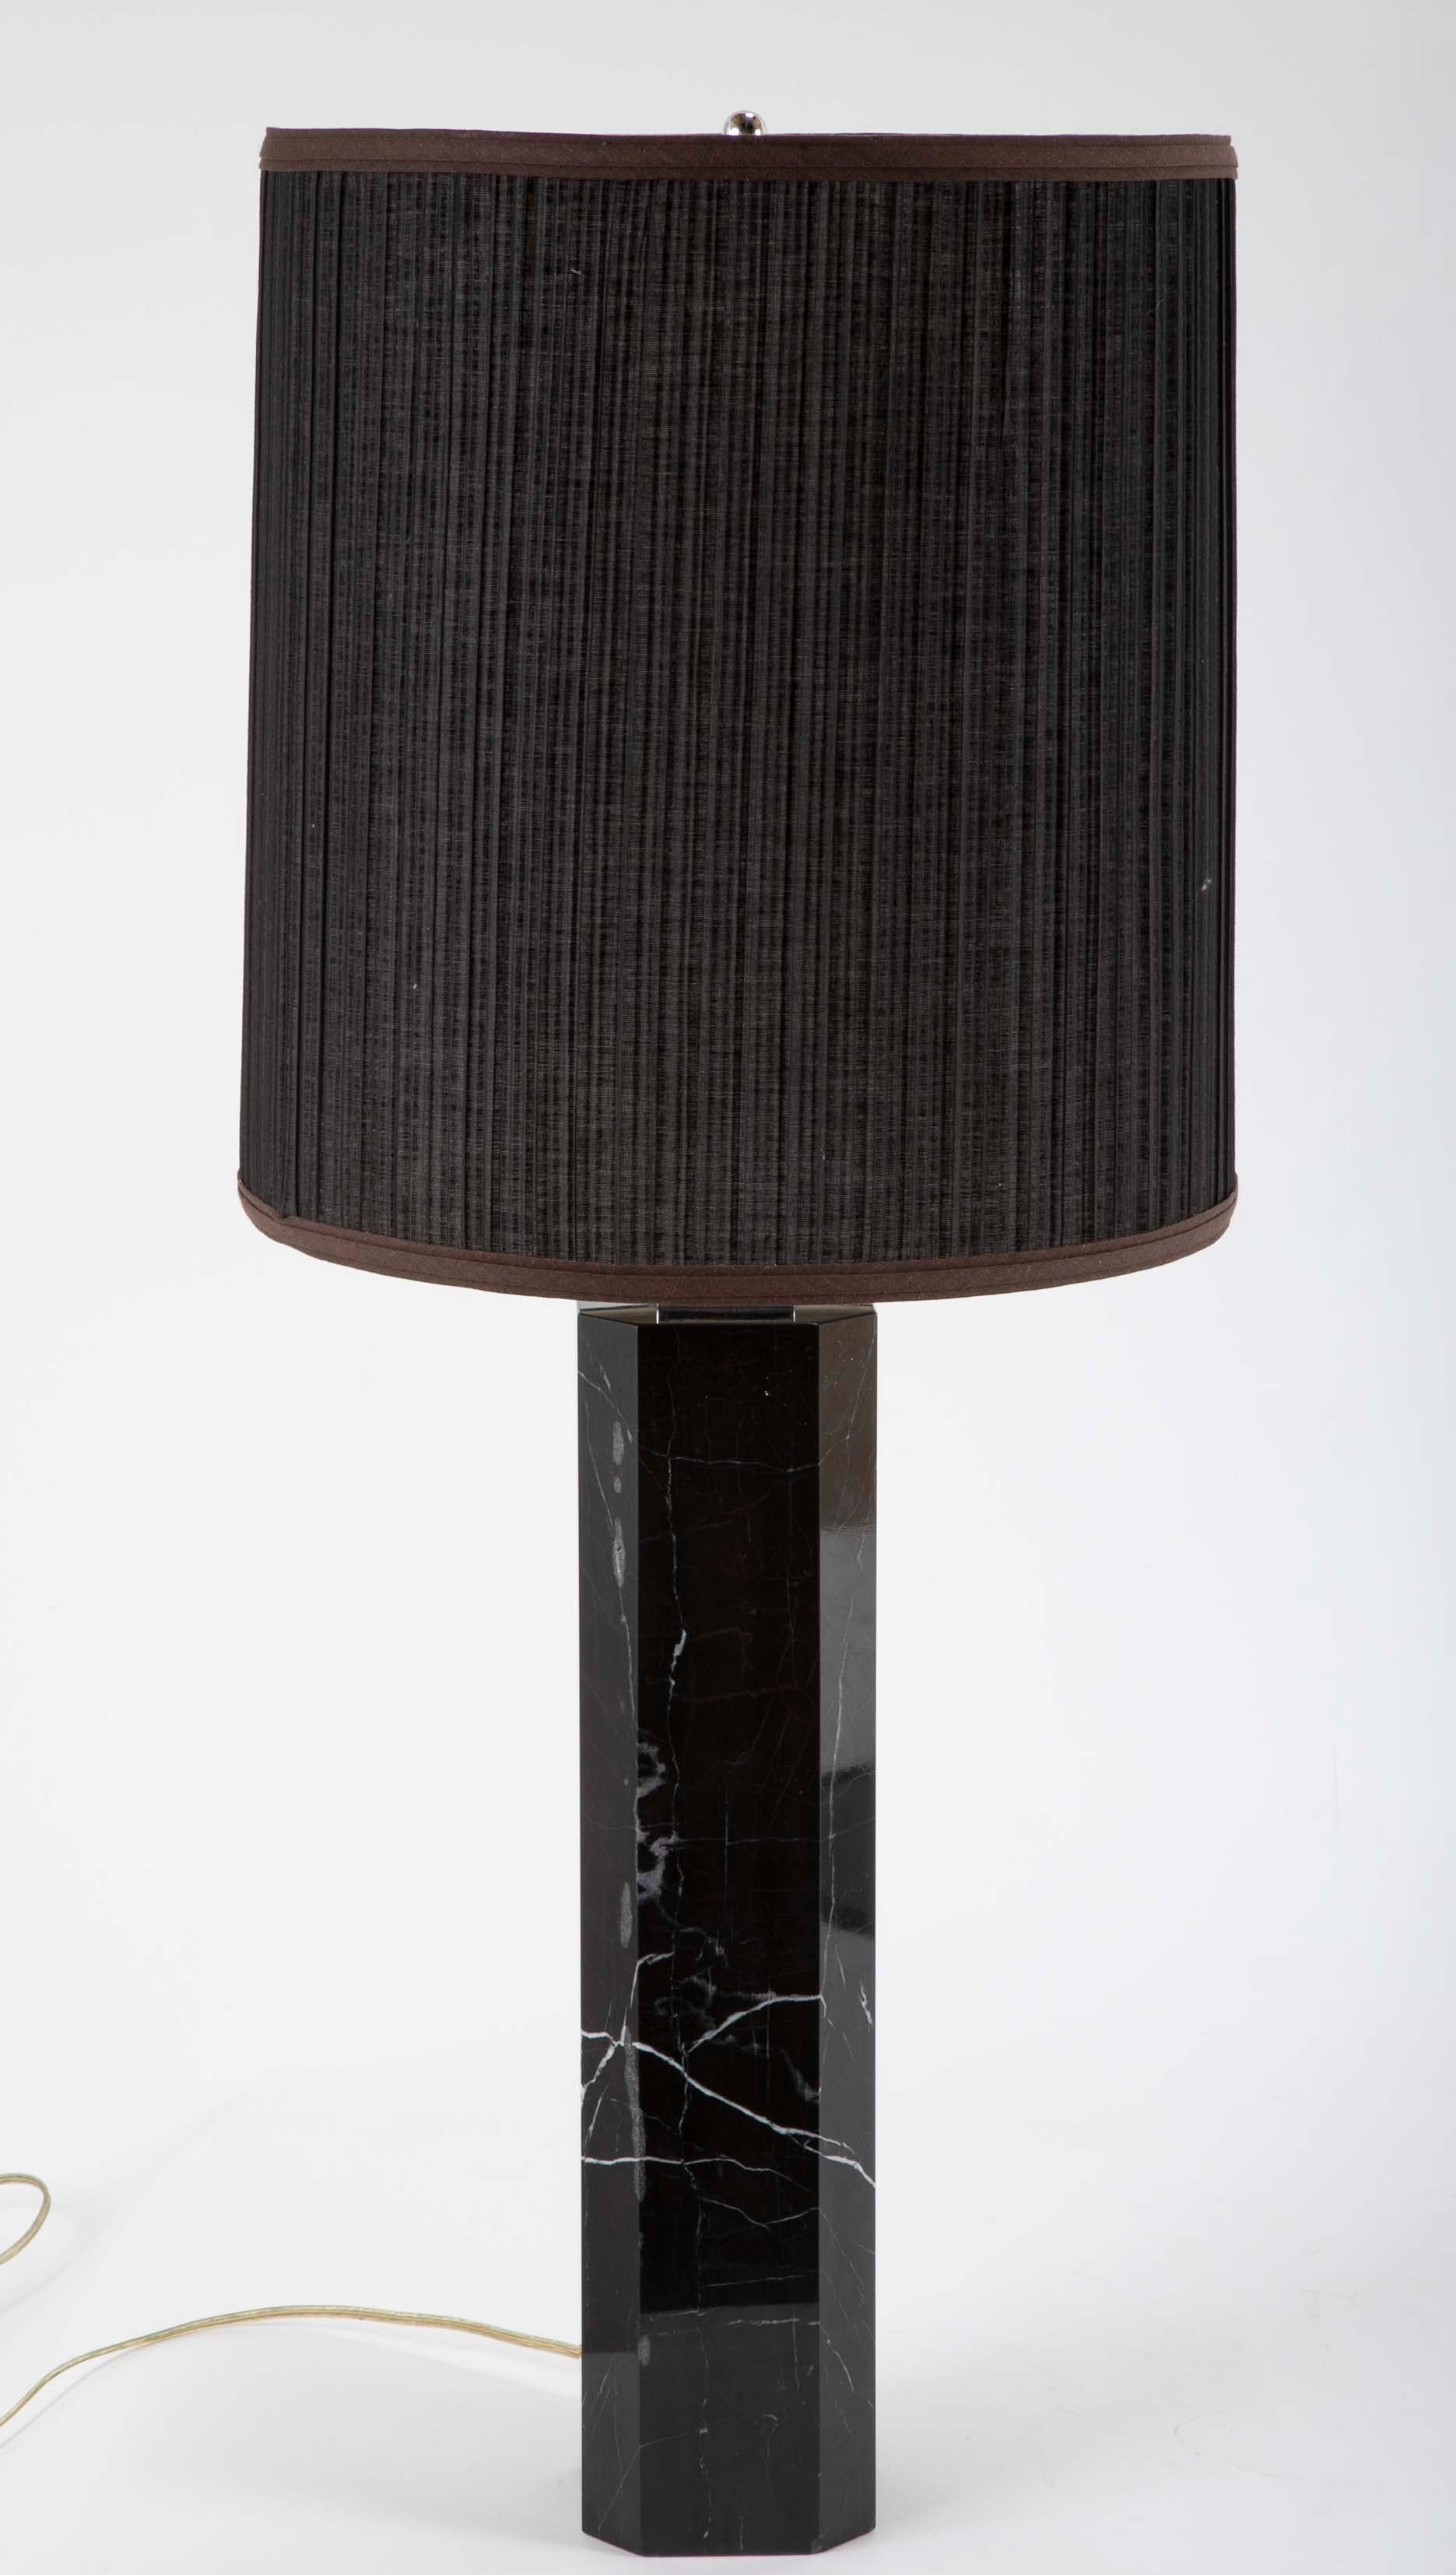 Black Veined Marble Lamp Attributed to T.H. Robsjohn-Gibbings